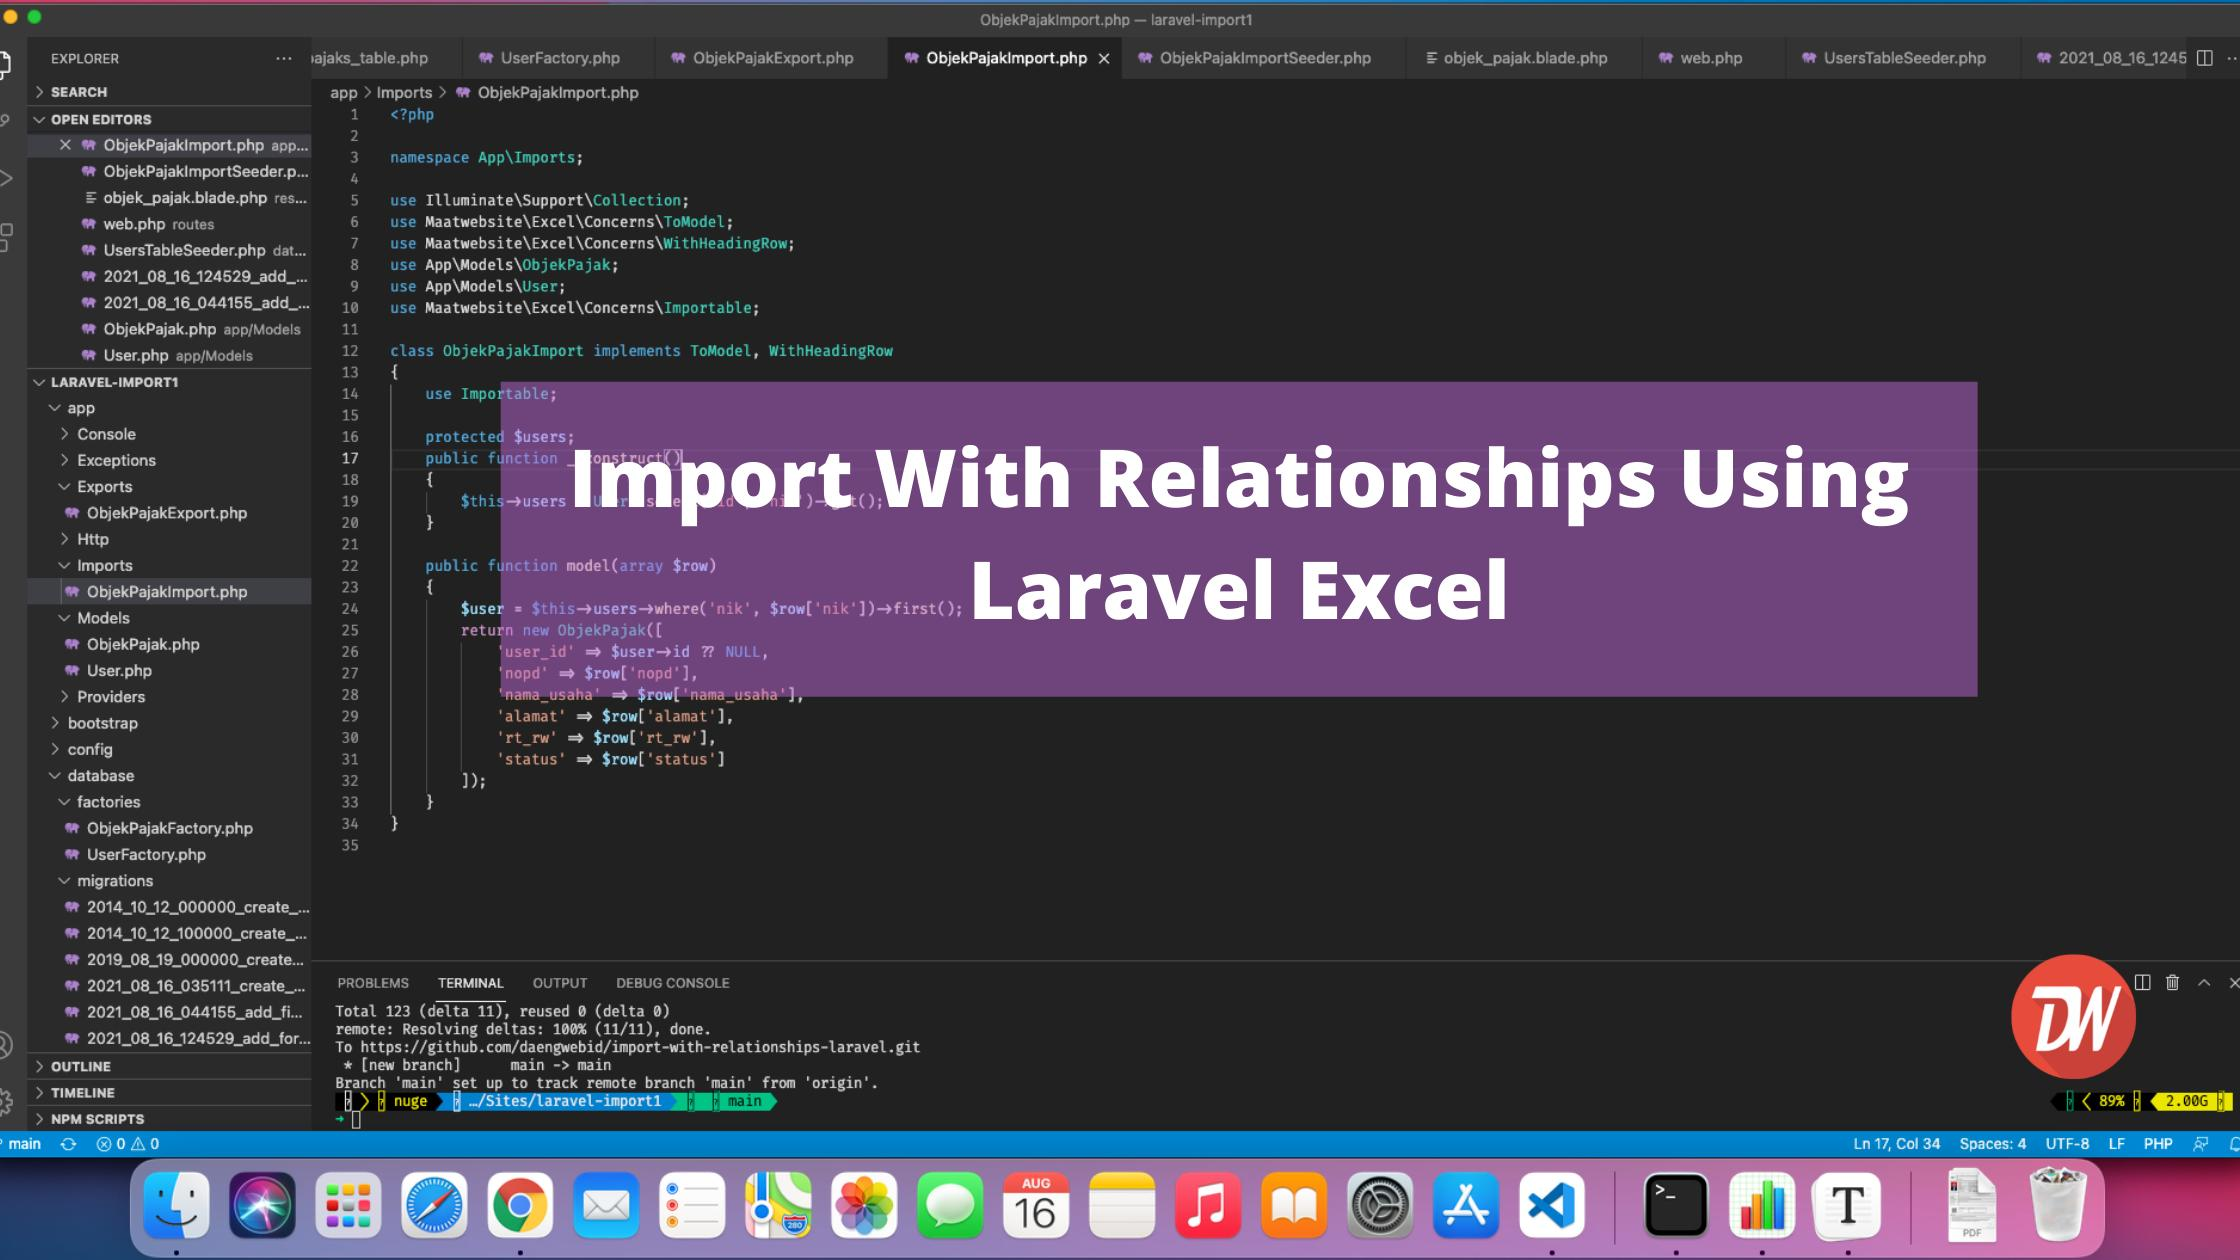 Import With Relationships Using Laravel Excel